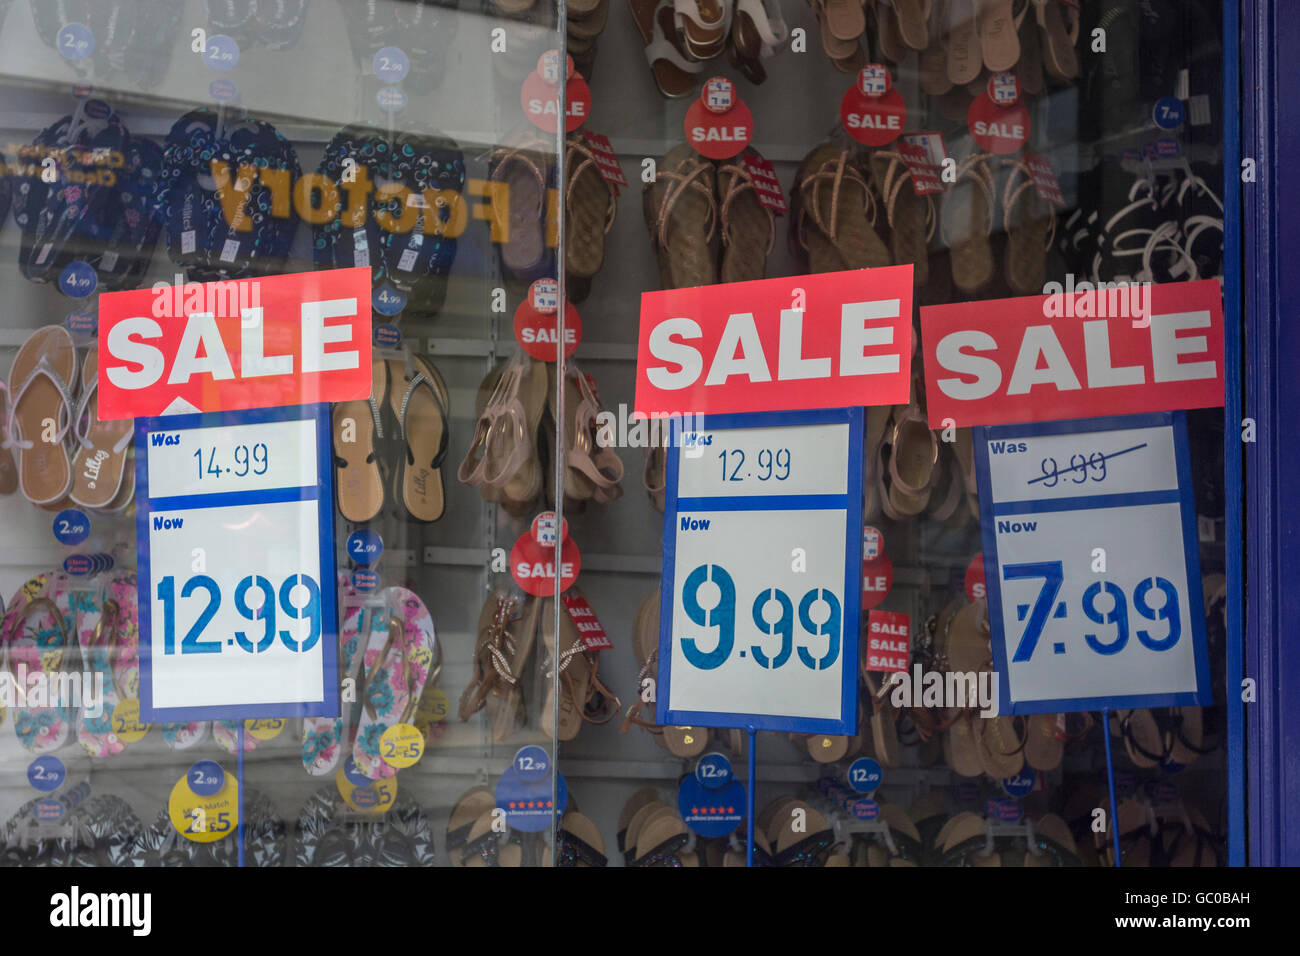 Hight street sales / retail sales / consumer confidence concept. Price reductions. Stock Photo